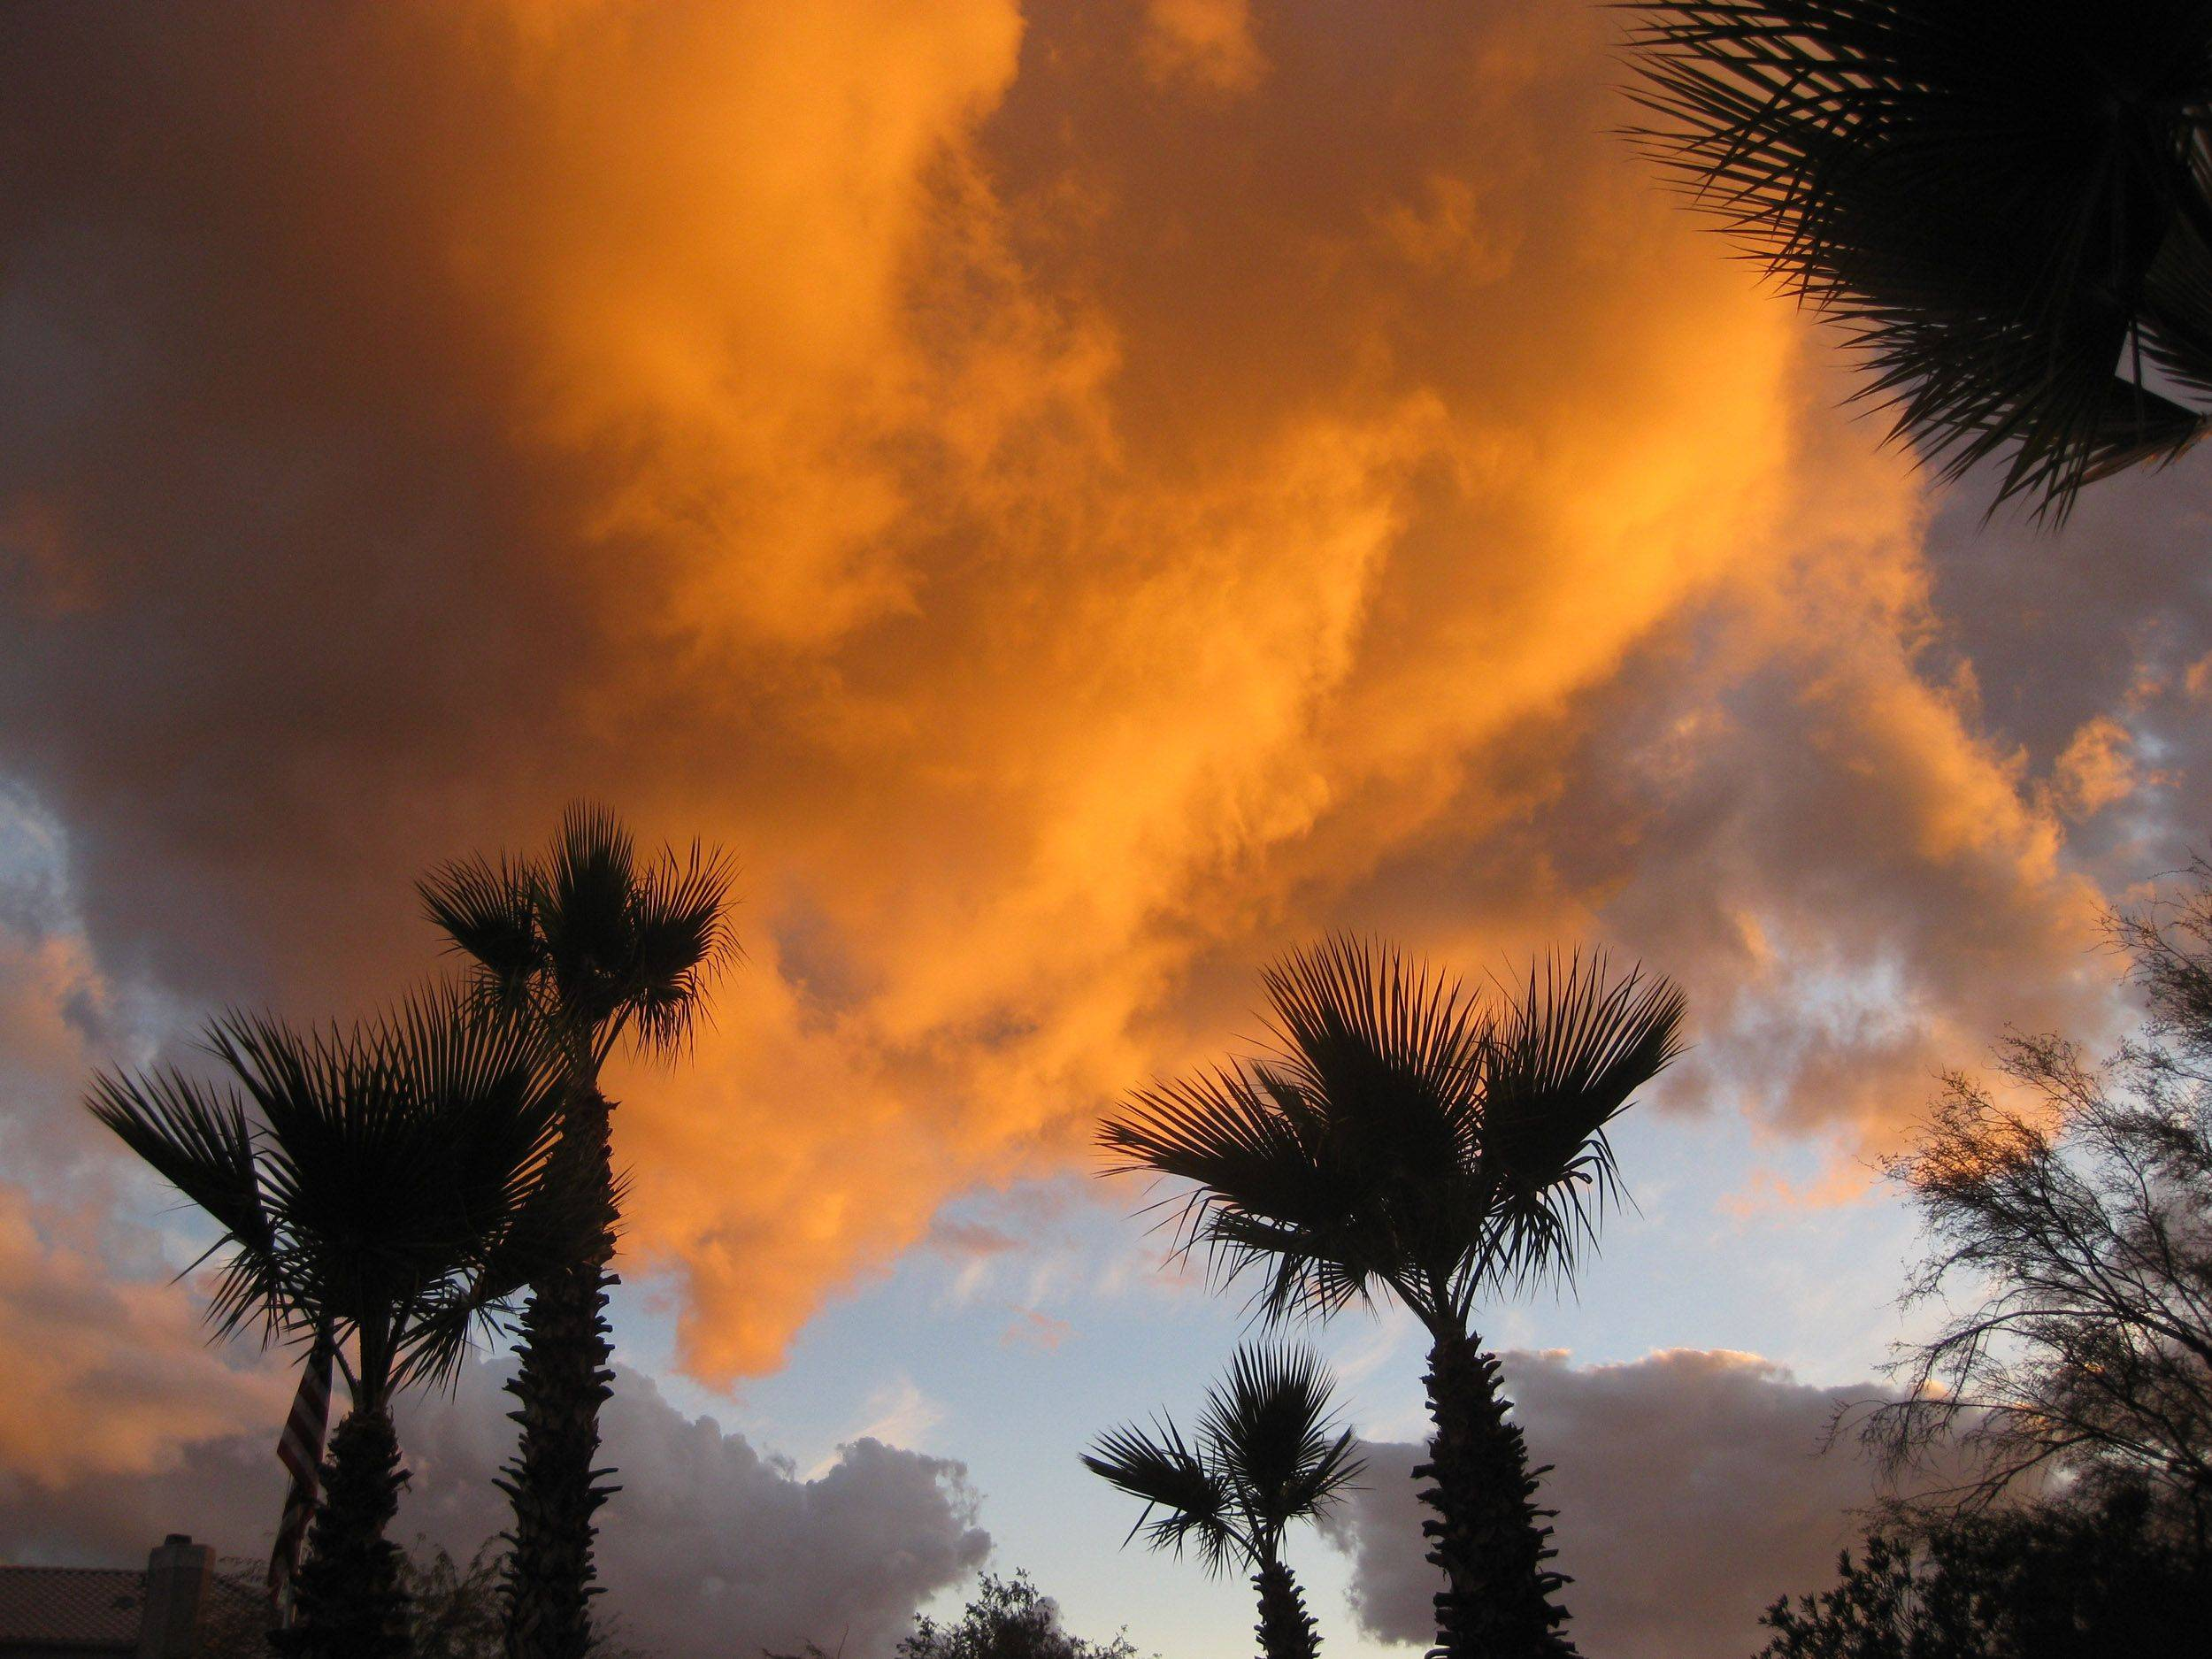 Chuck Bennett of Mount ProspectThe setting sun created a warm glow on the clouds in Arizona on Sunday, February 20th, in Fountain Hills.